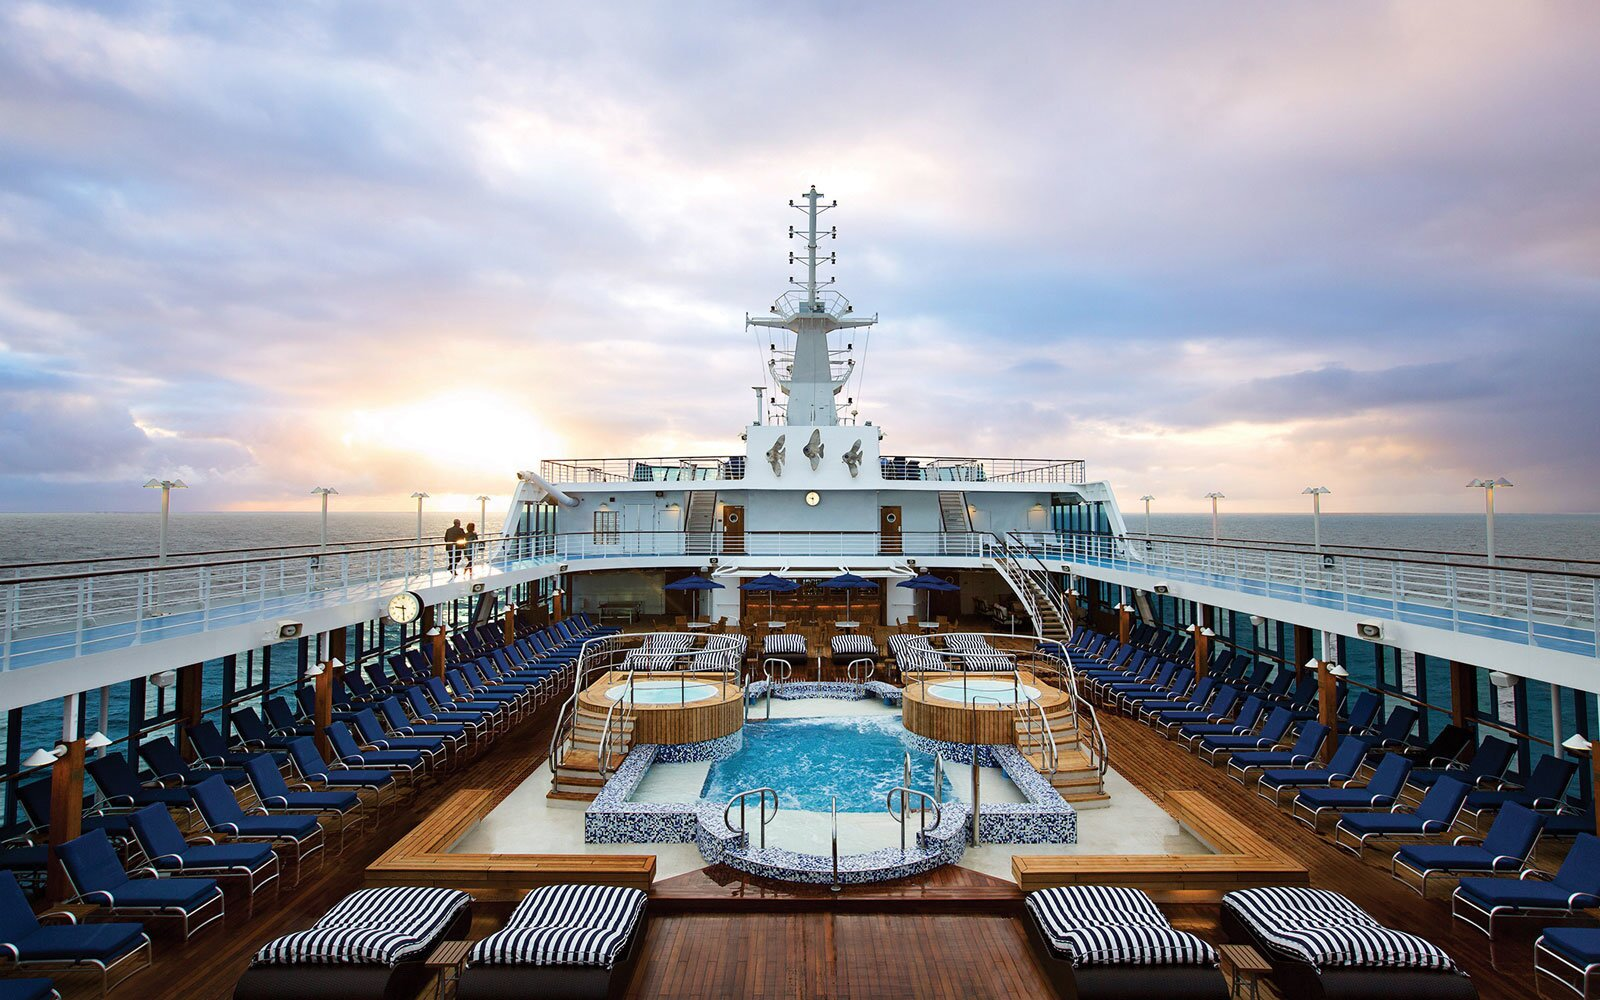 Five Things to Know About Oceania Cruises' Nautica Cruise Ship